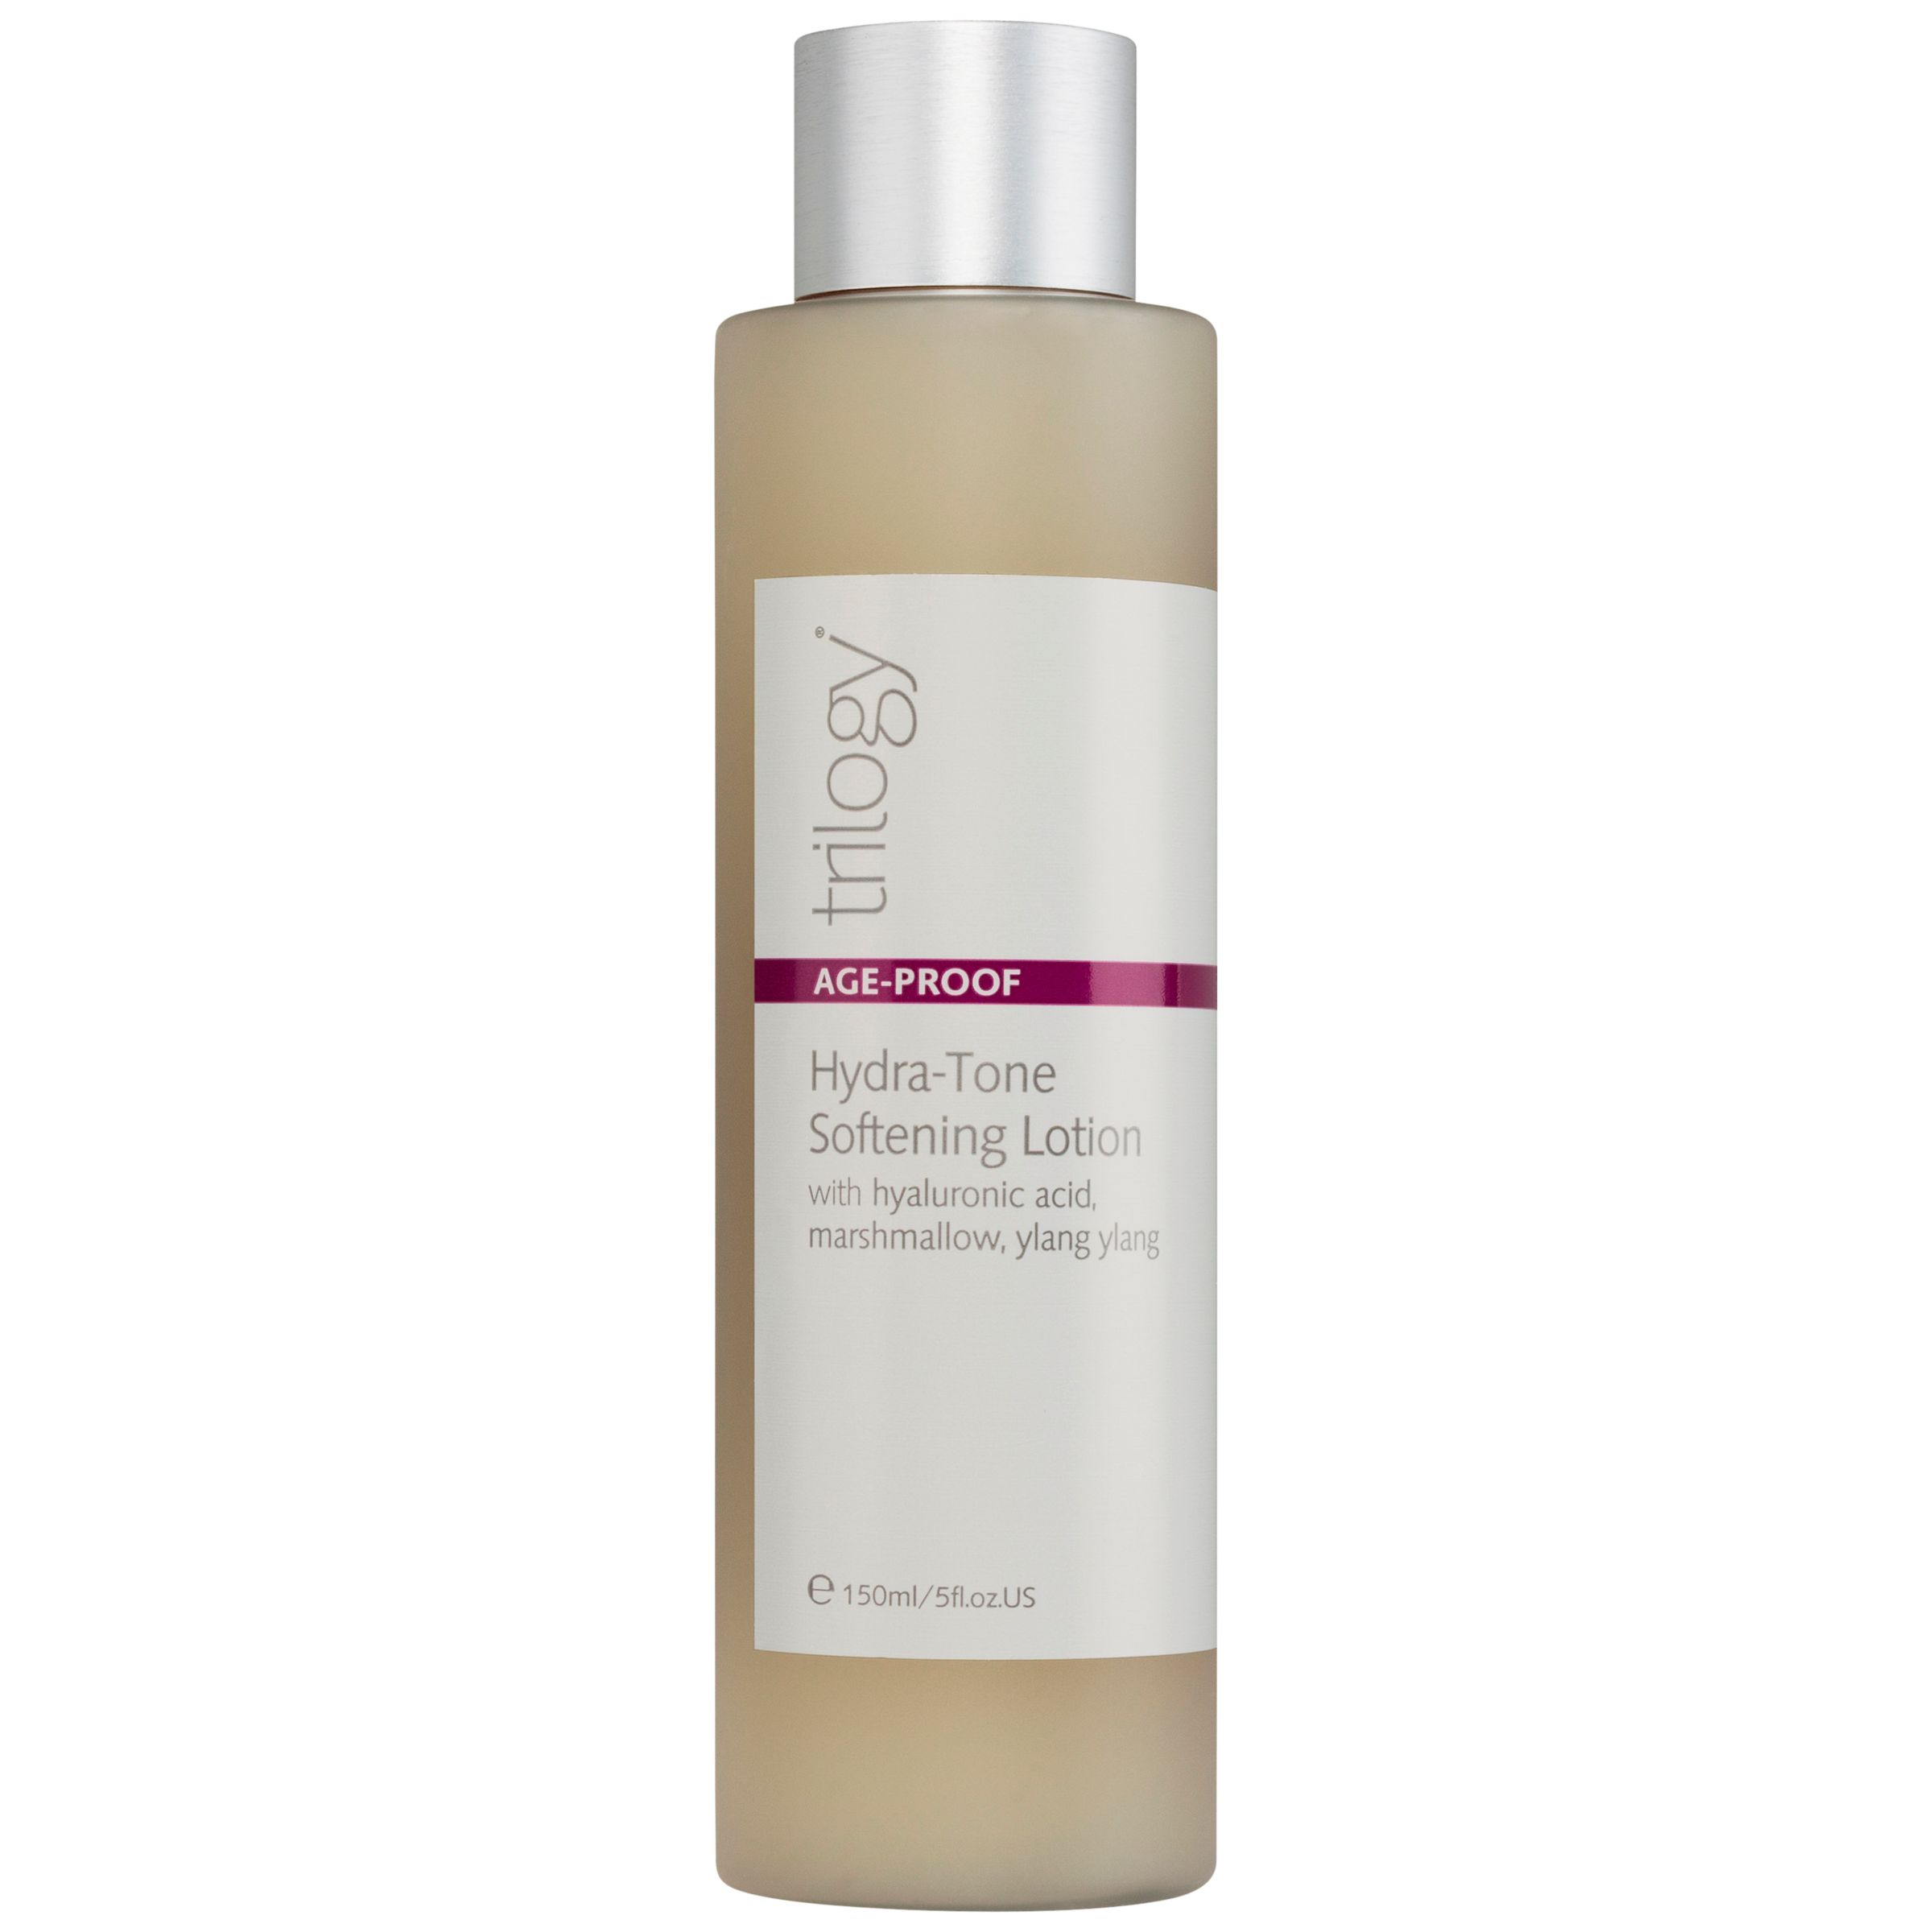 Trilogy Trilogy Age Proof Hydra-tone Softening Lotion, 150ml